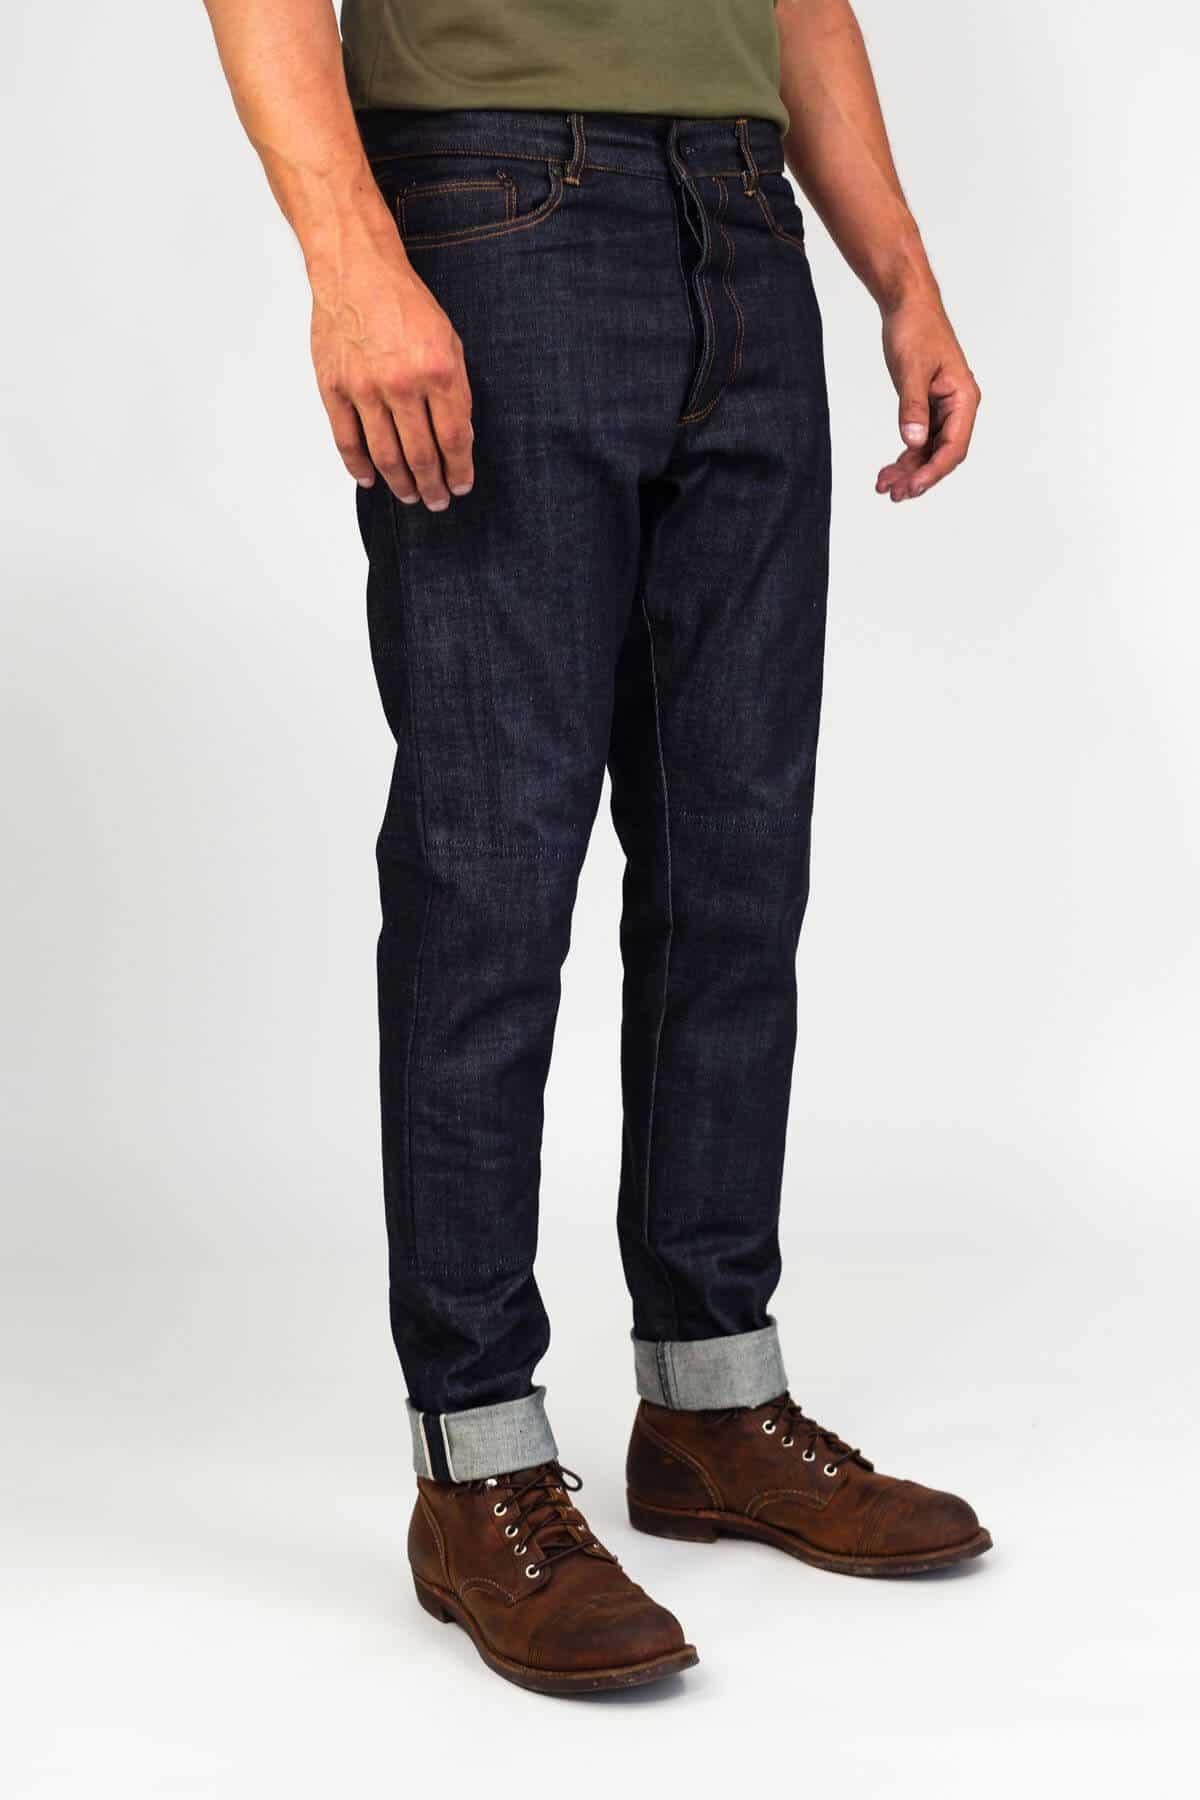 Selvedge Moto Denim - Indigo